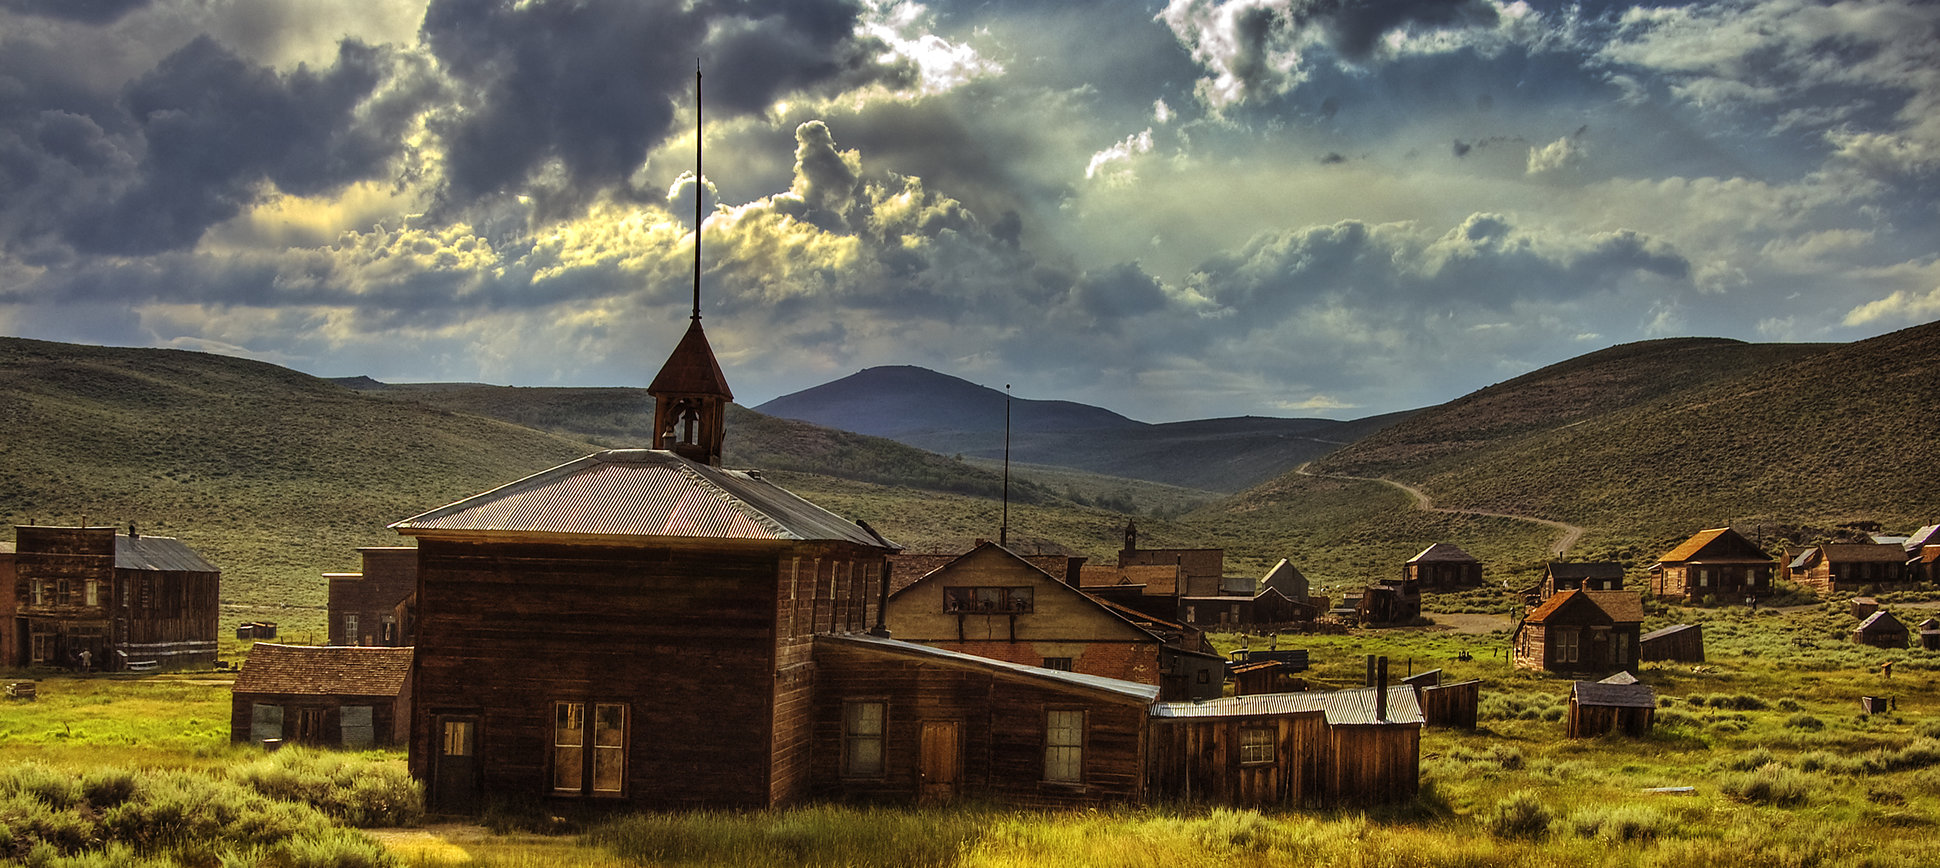 Abandoned towns in america 10 of most eerily ghost towns for Abandoned neighborhoods in america